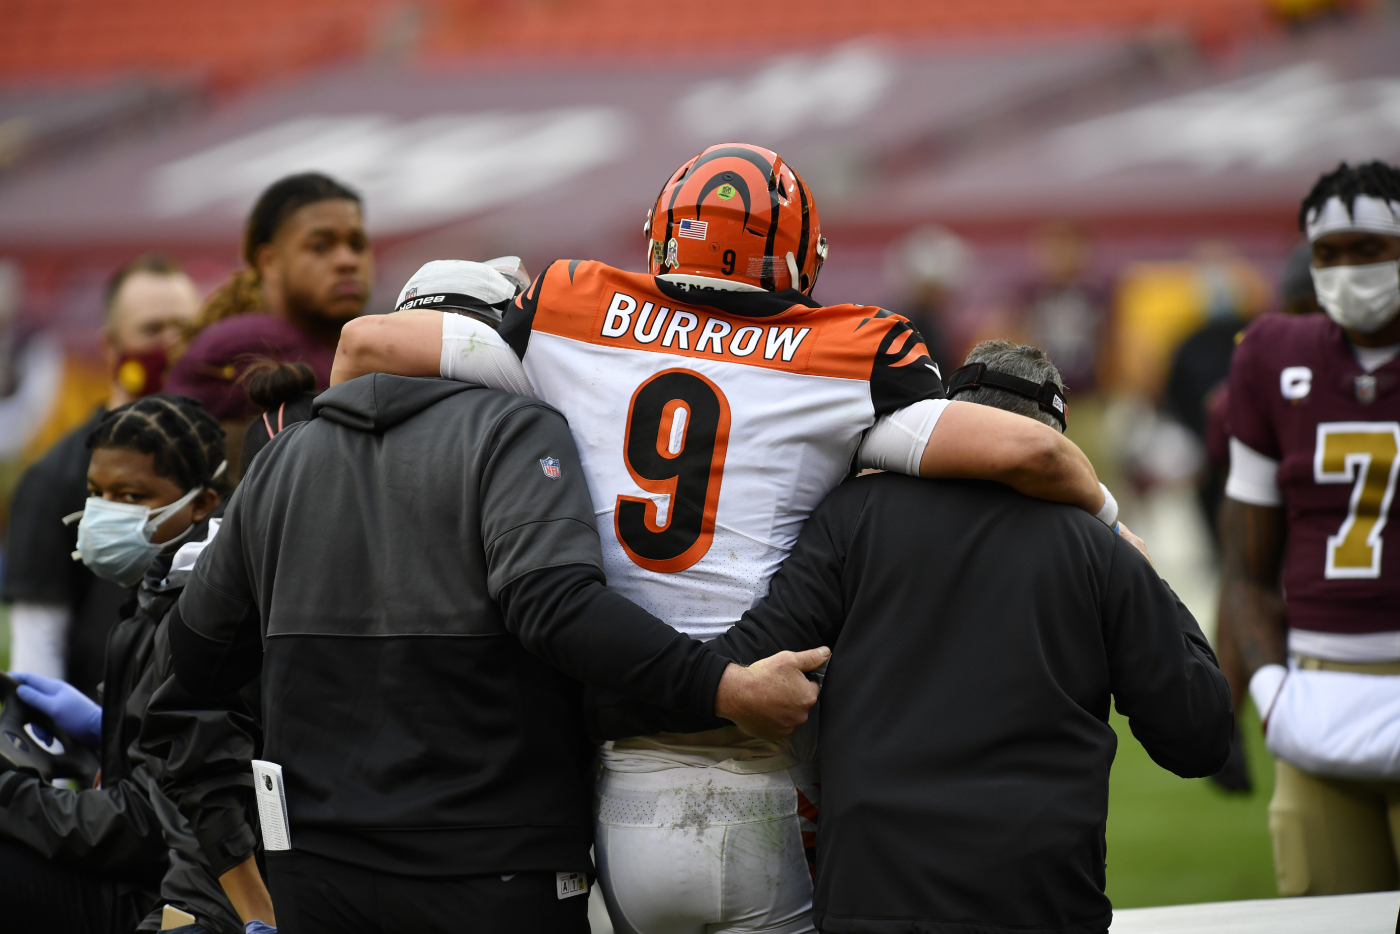 Joe Burrow's rookie year appears to be over after he recently suffered a brutal injury. He can blame it all on the Cincinnati Bengals, too.